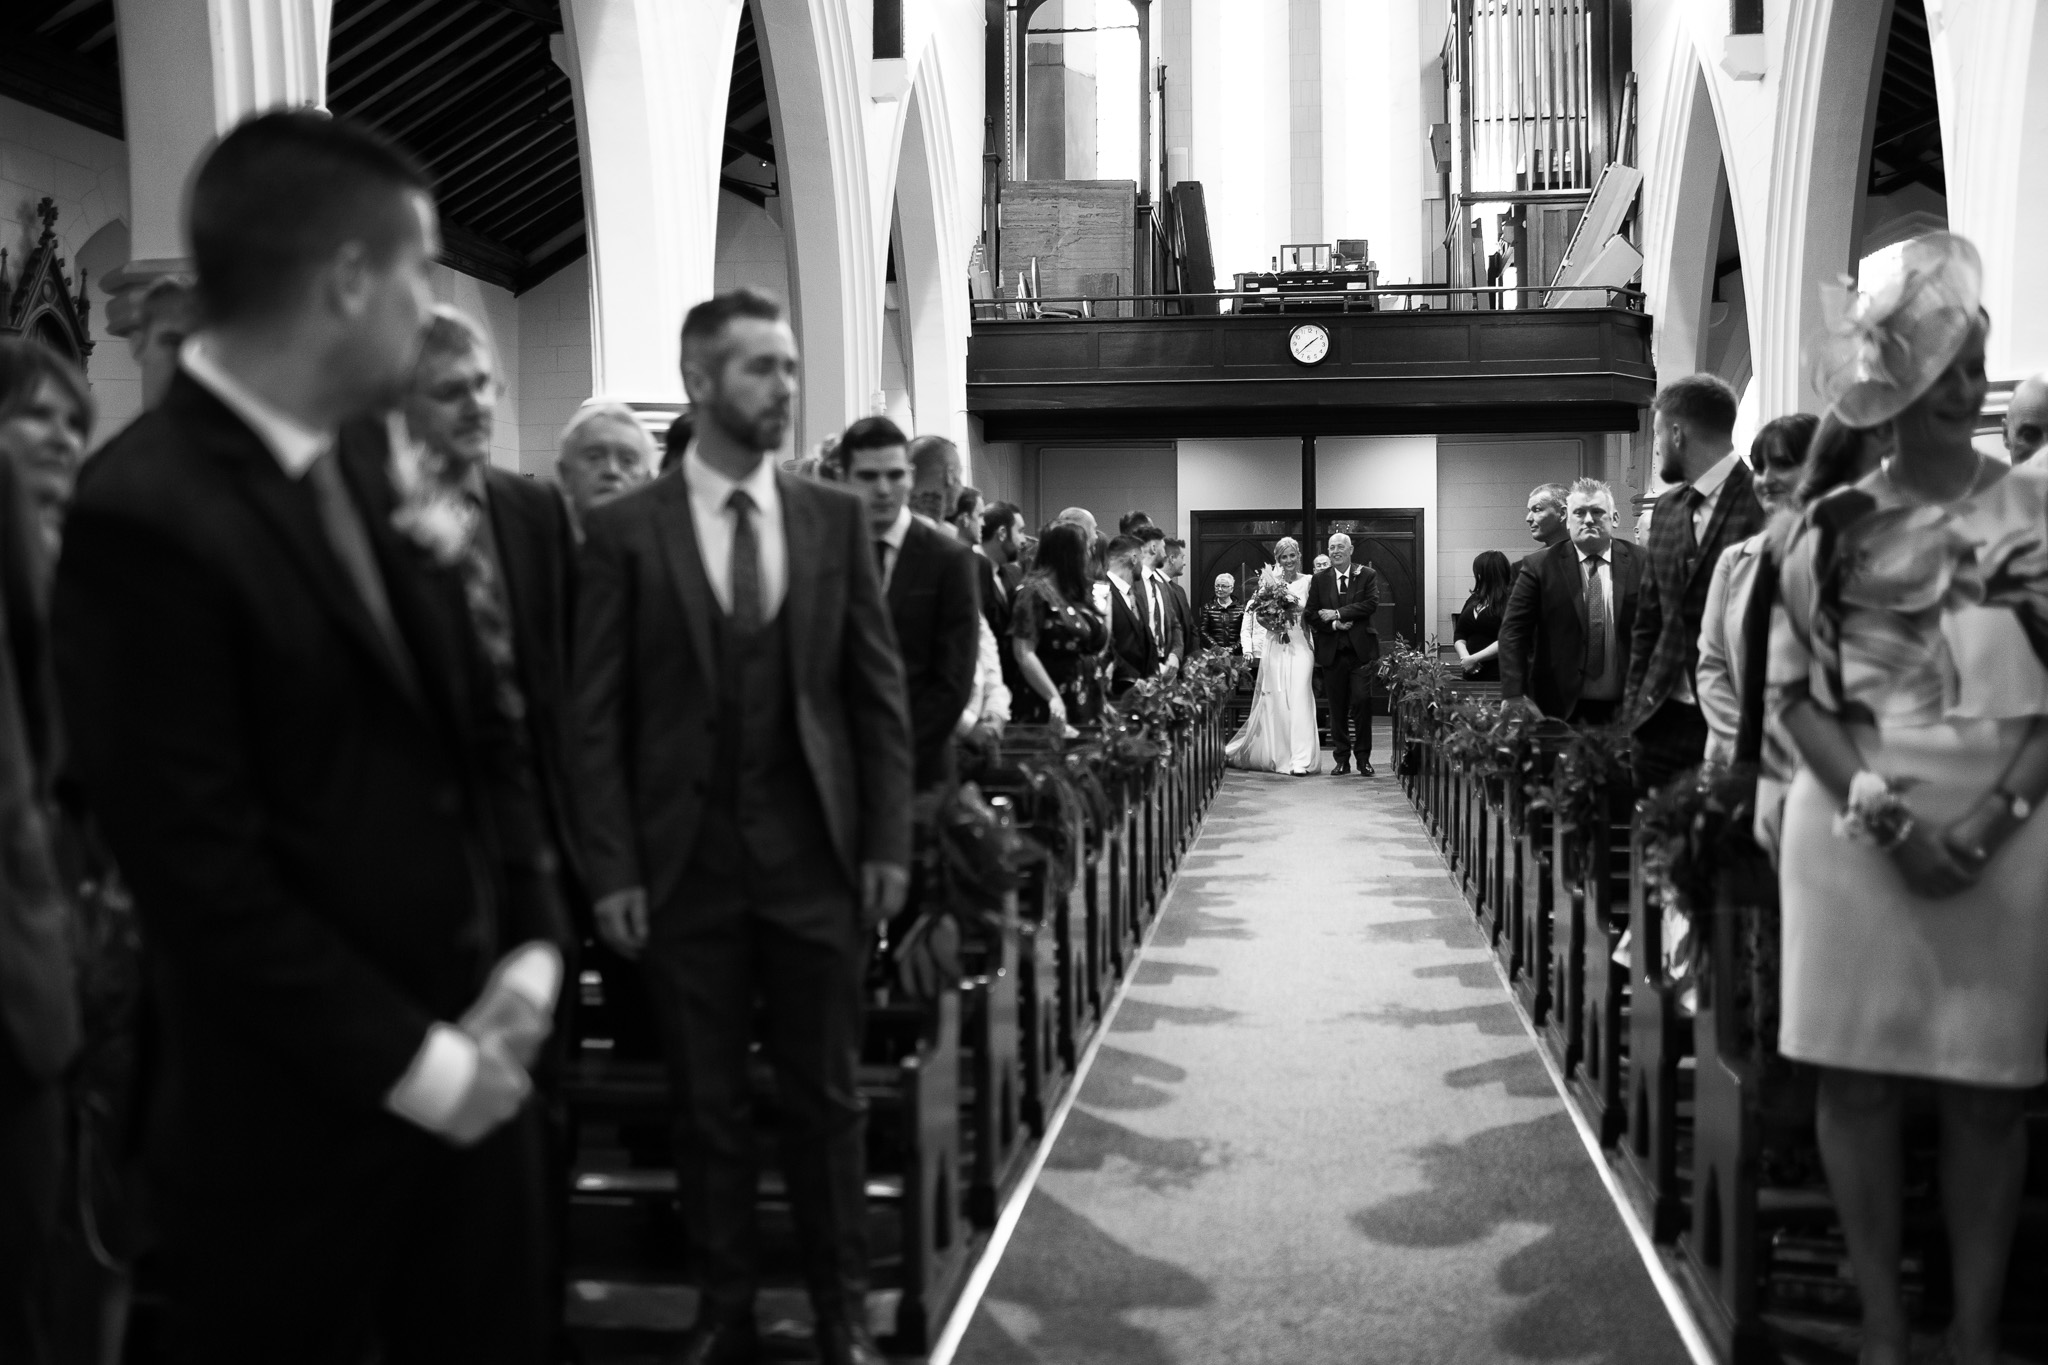 Mark_Barnes_Northern_Ireland_Wedding_Photography_Ballyscullion_Park_Wedding_Photography_Stef&Bobby-17.jpg